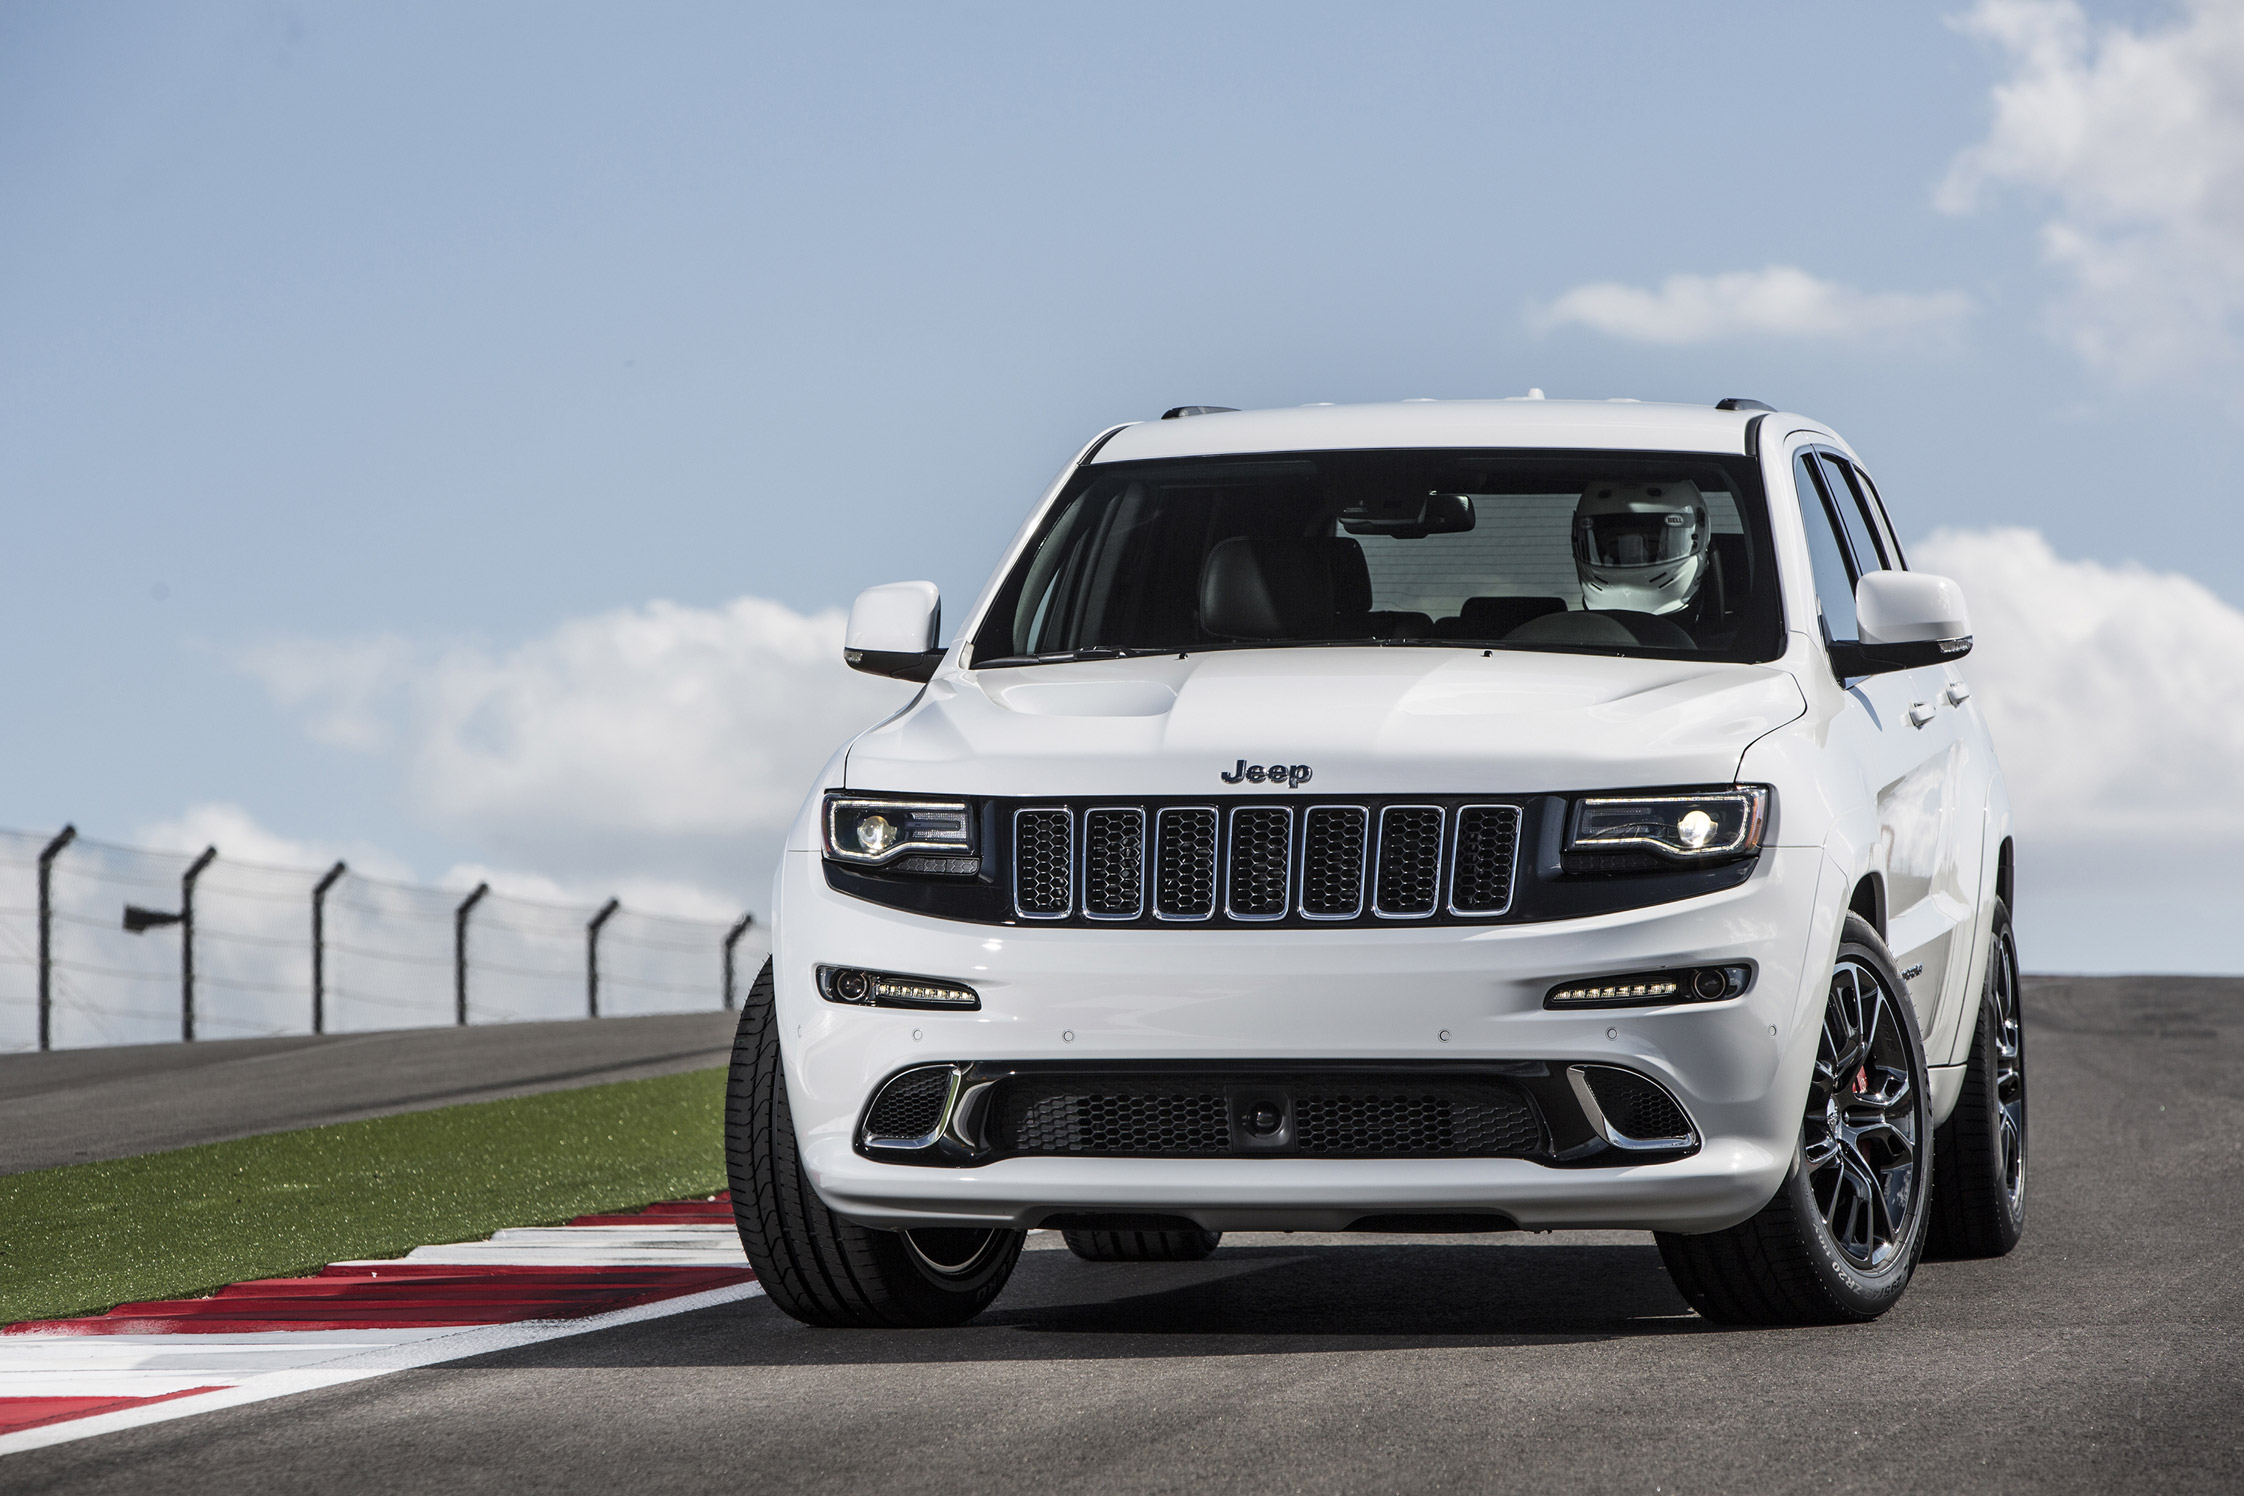 essai jeep grand cherokee srt motorlegend. Black Bedroom Furniture Sets. Home Design Ideas